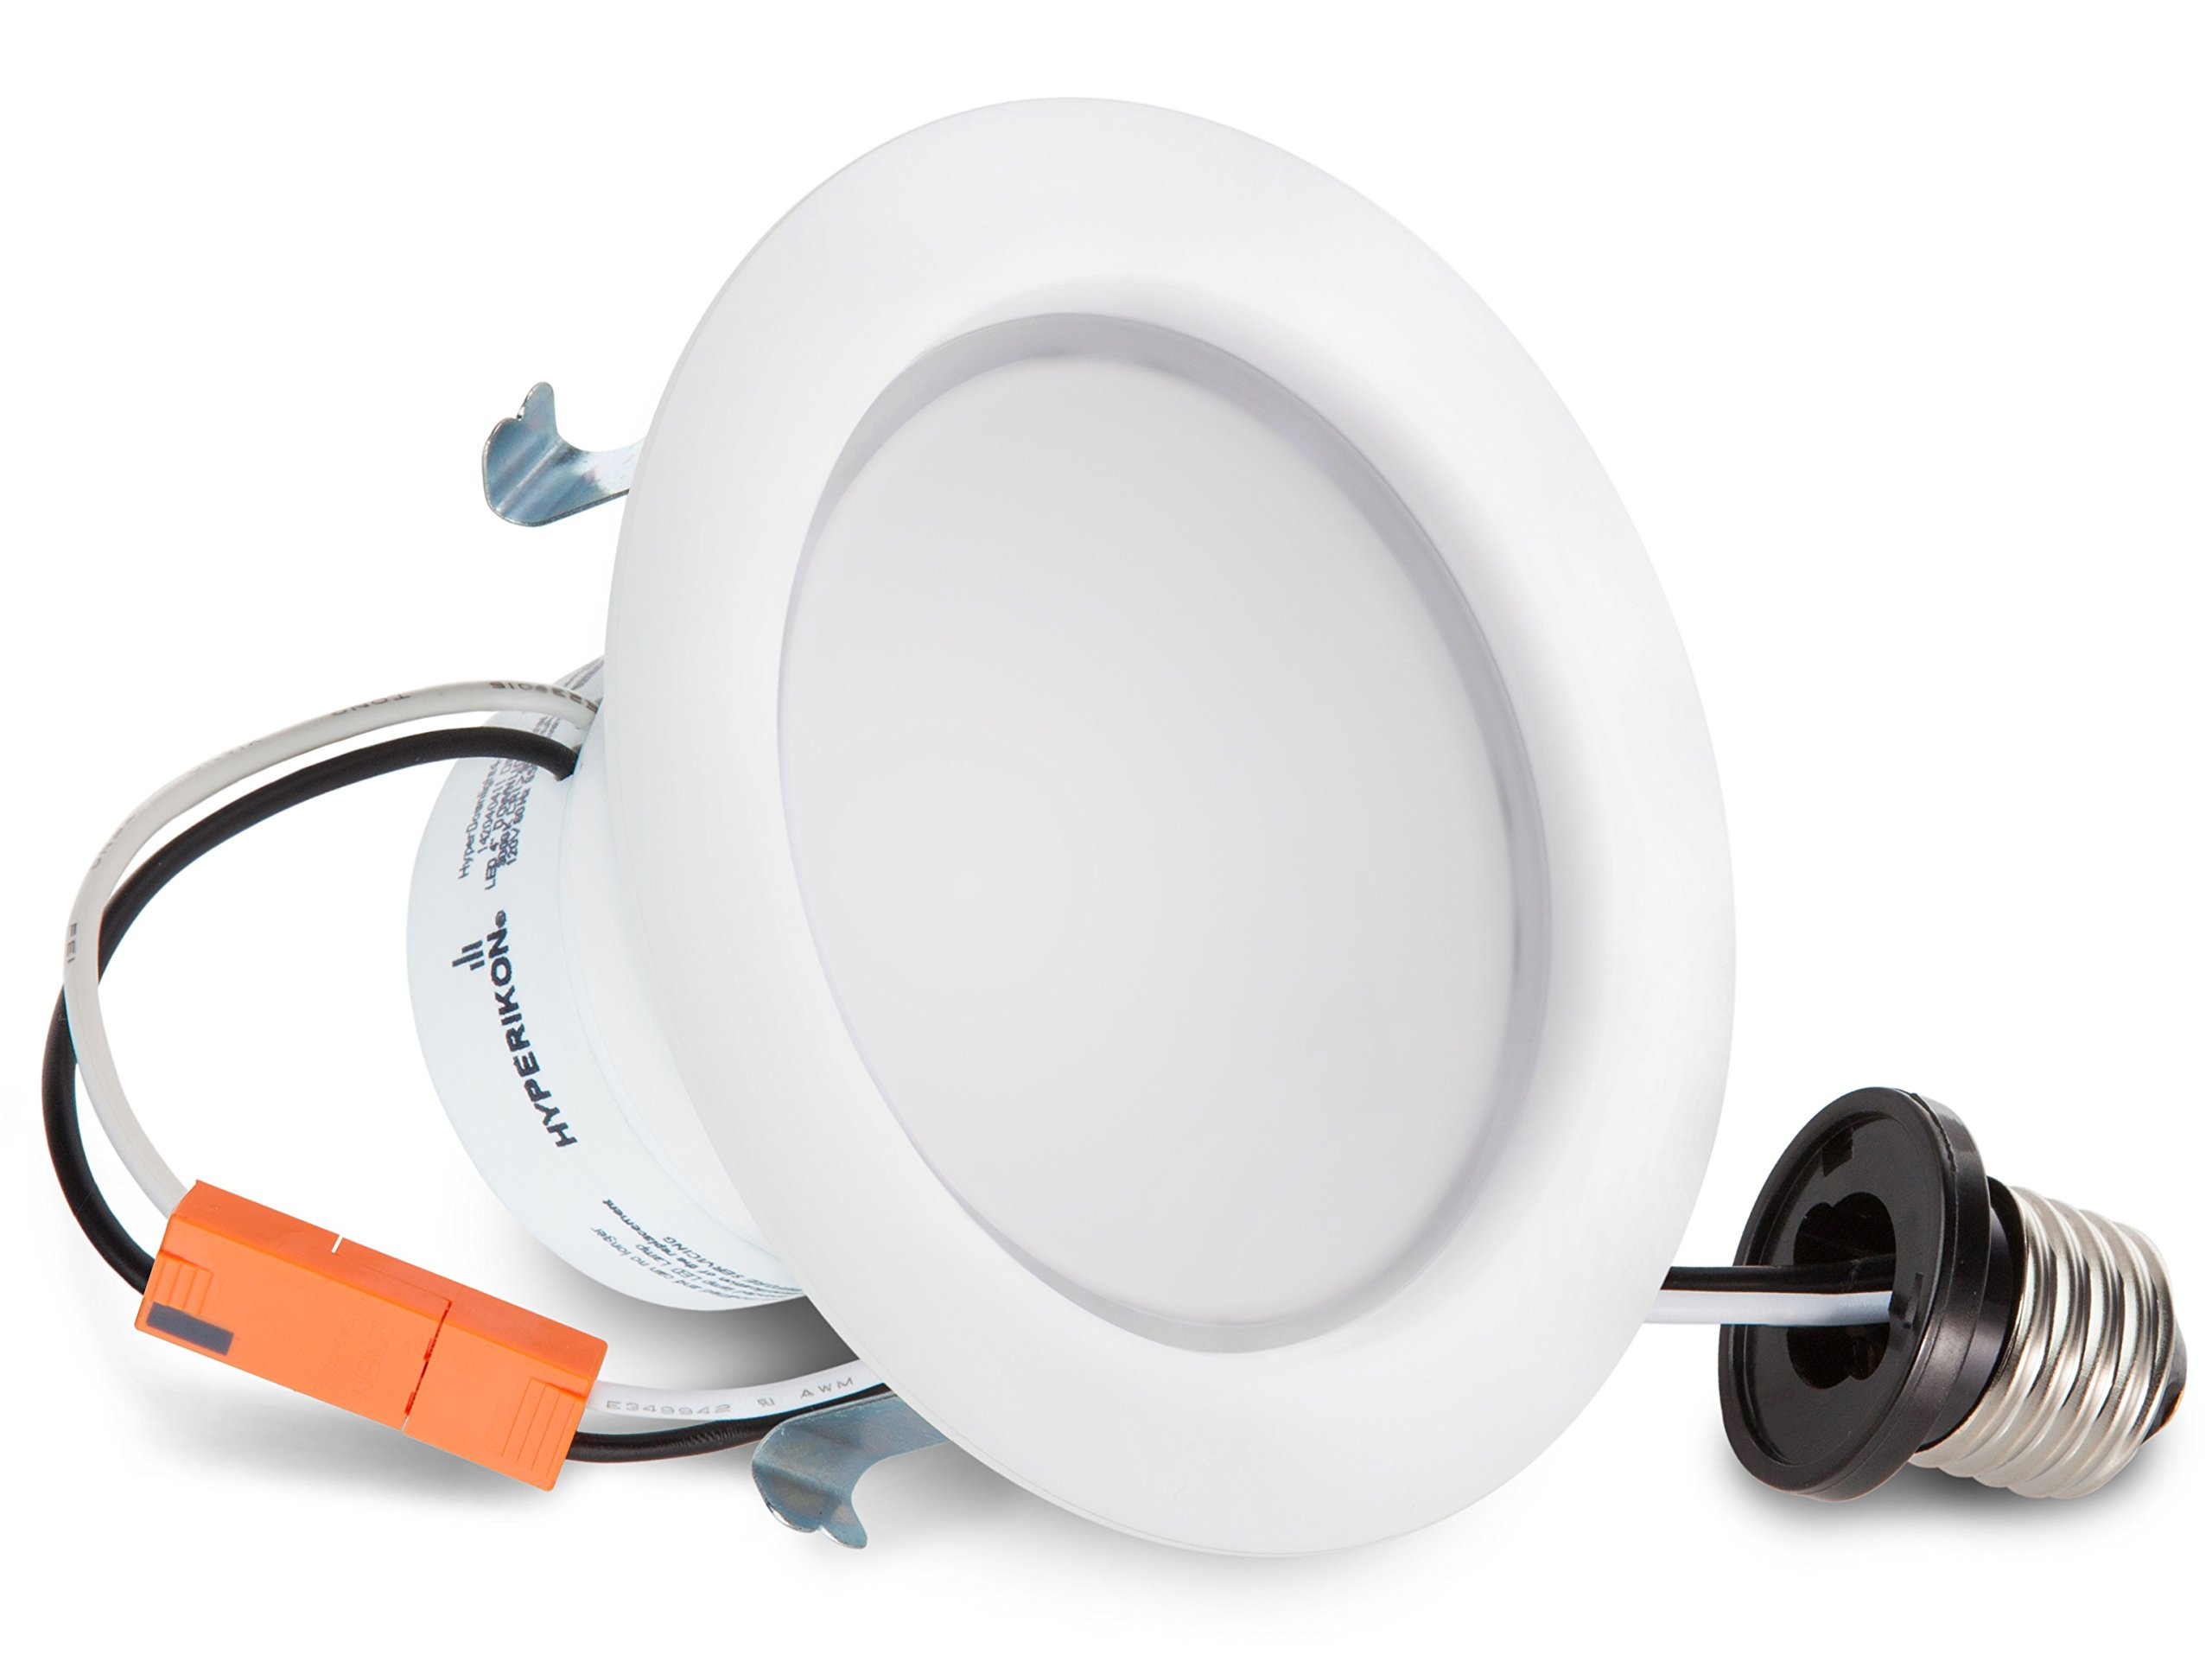 Hyperikon 4 Inch Dimmable Recessed LED Downlight, 9W (65W Equivalent), 2700K (Warm White), CRI94, Retrofit Lighting Fixture, ENERGY STAR, 630 Lumens - Great for Cans in Bathroom, Kitchen, Office